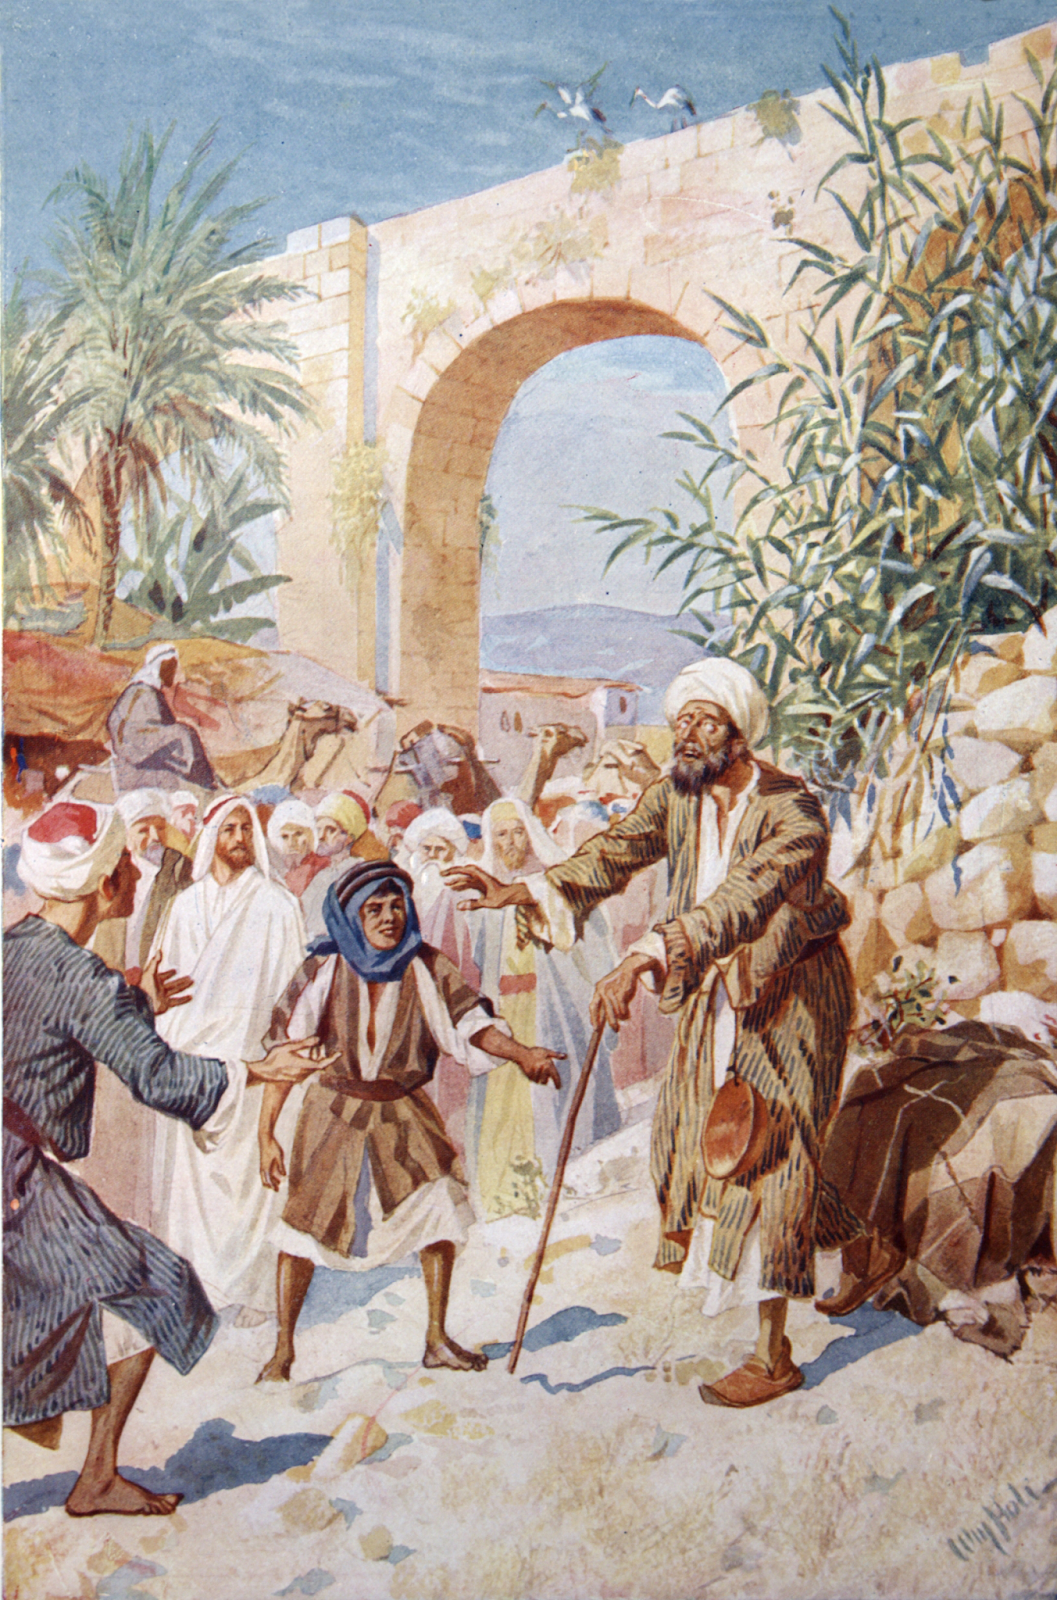 When Bartimaeus was told that Jesus was calling for him, he acted immediately